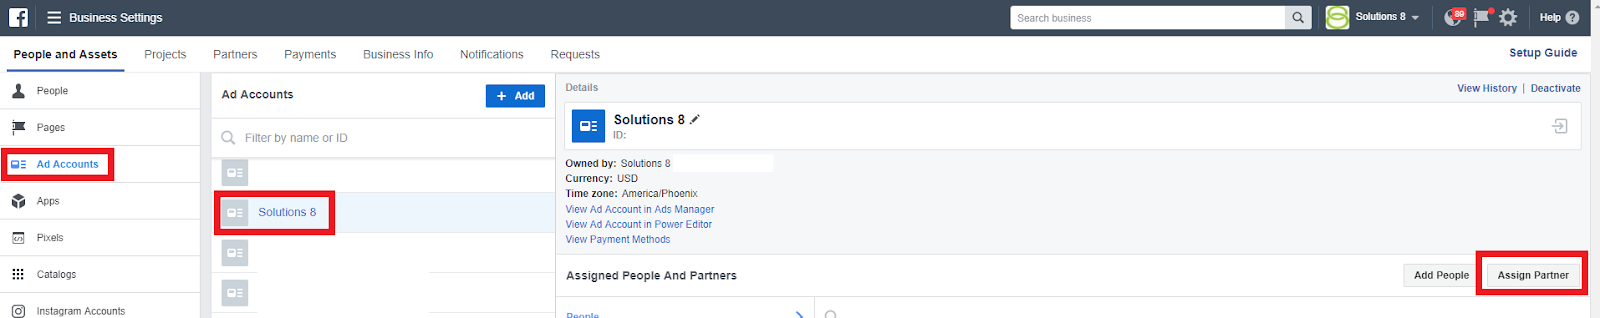 fb access step 2.png